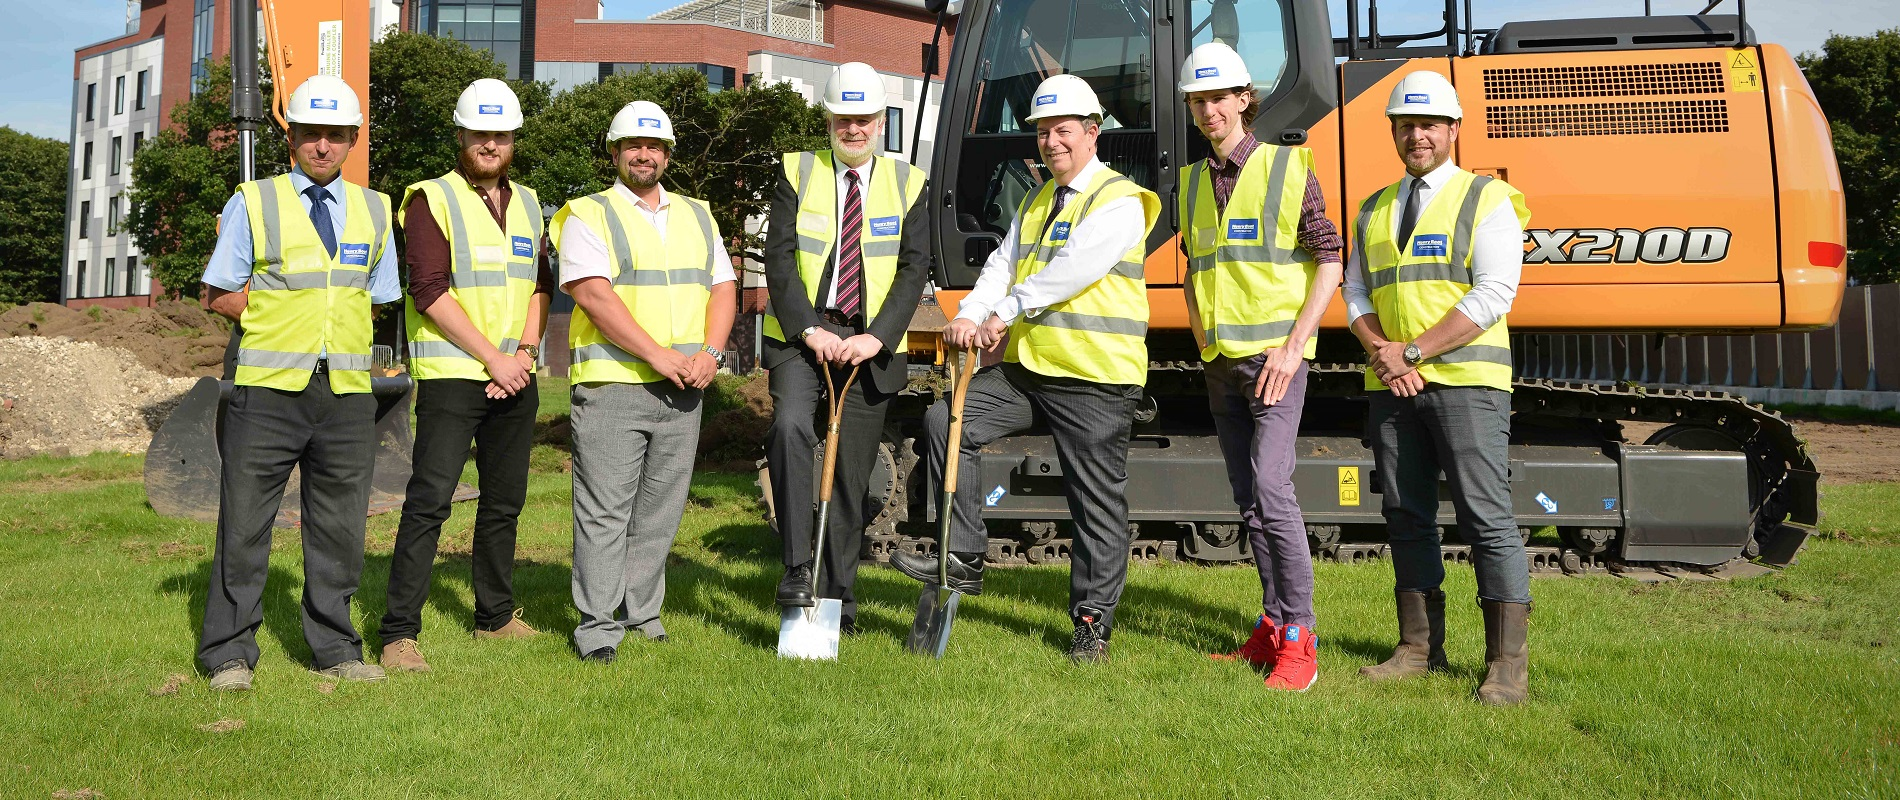 Ground broken on new sports centre